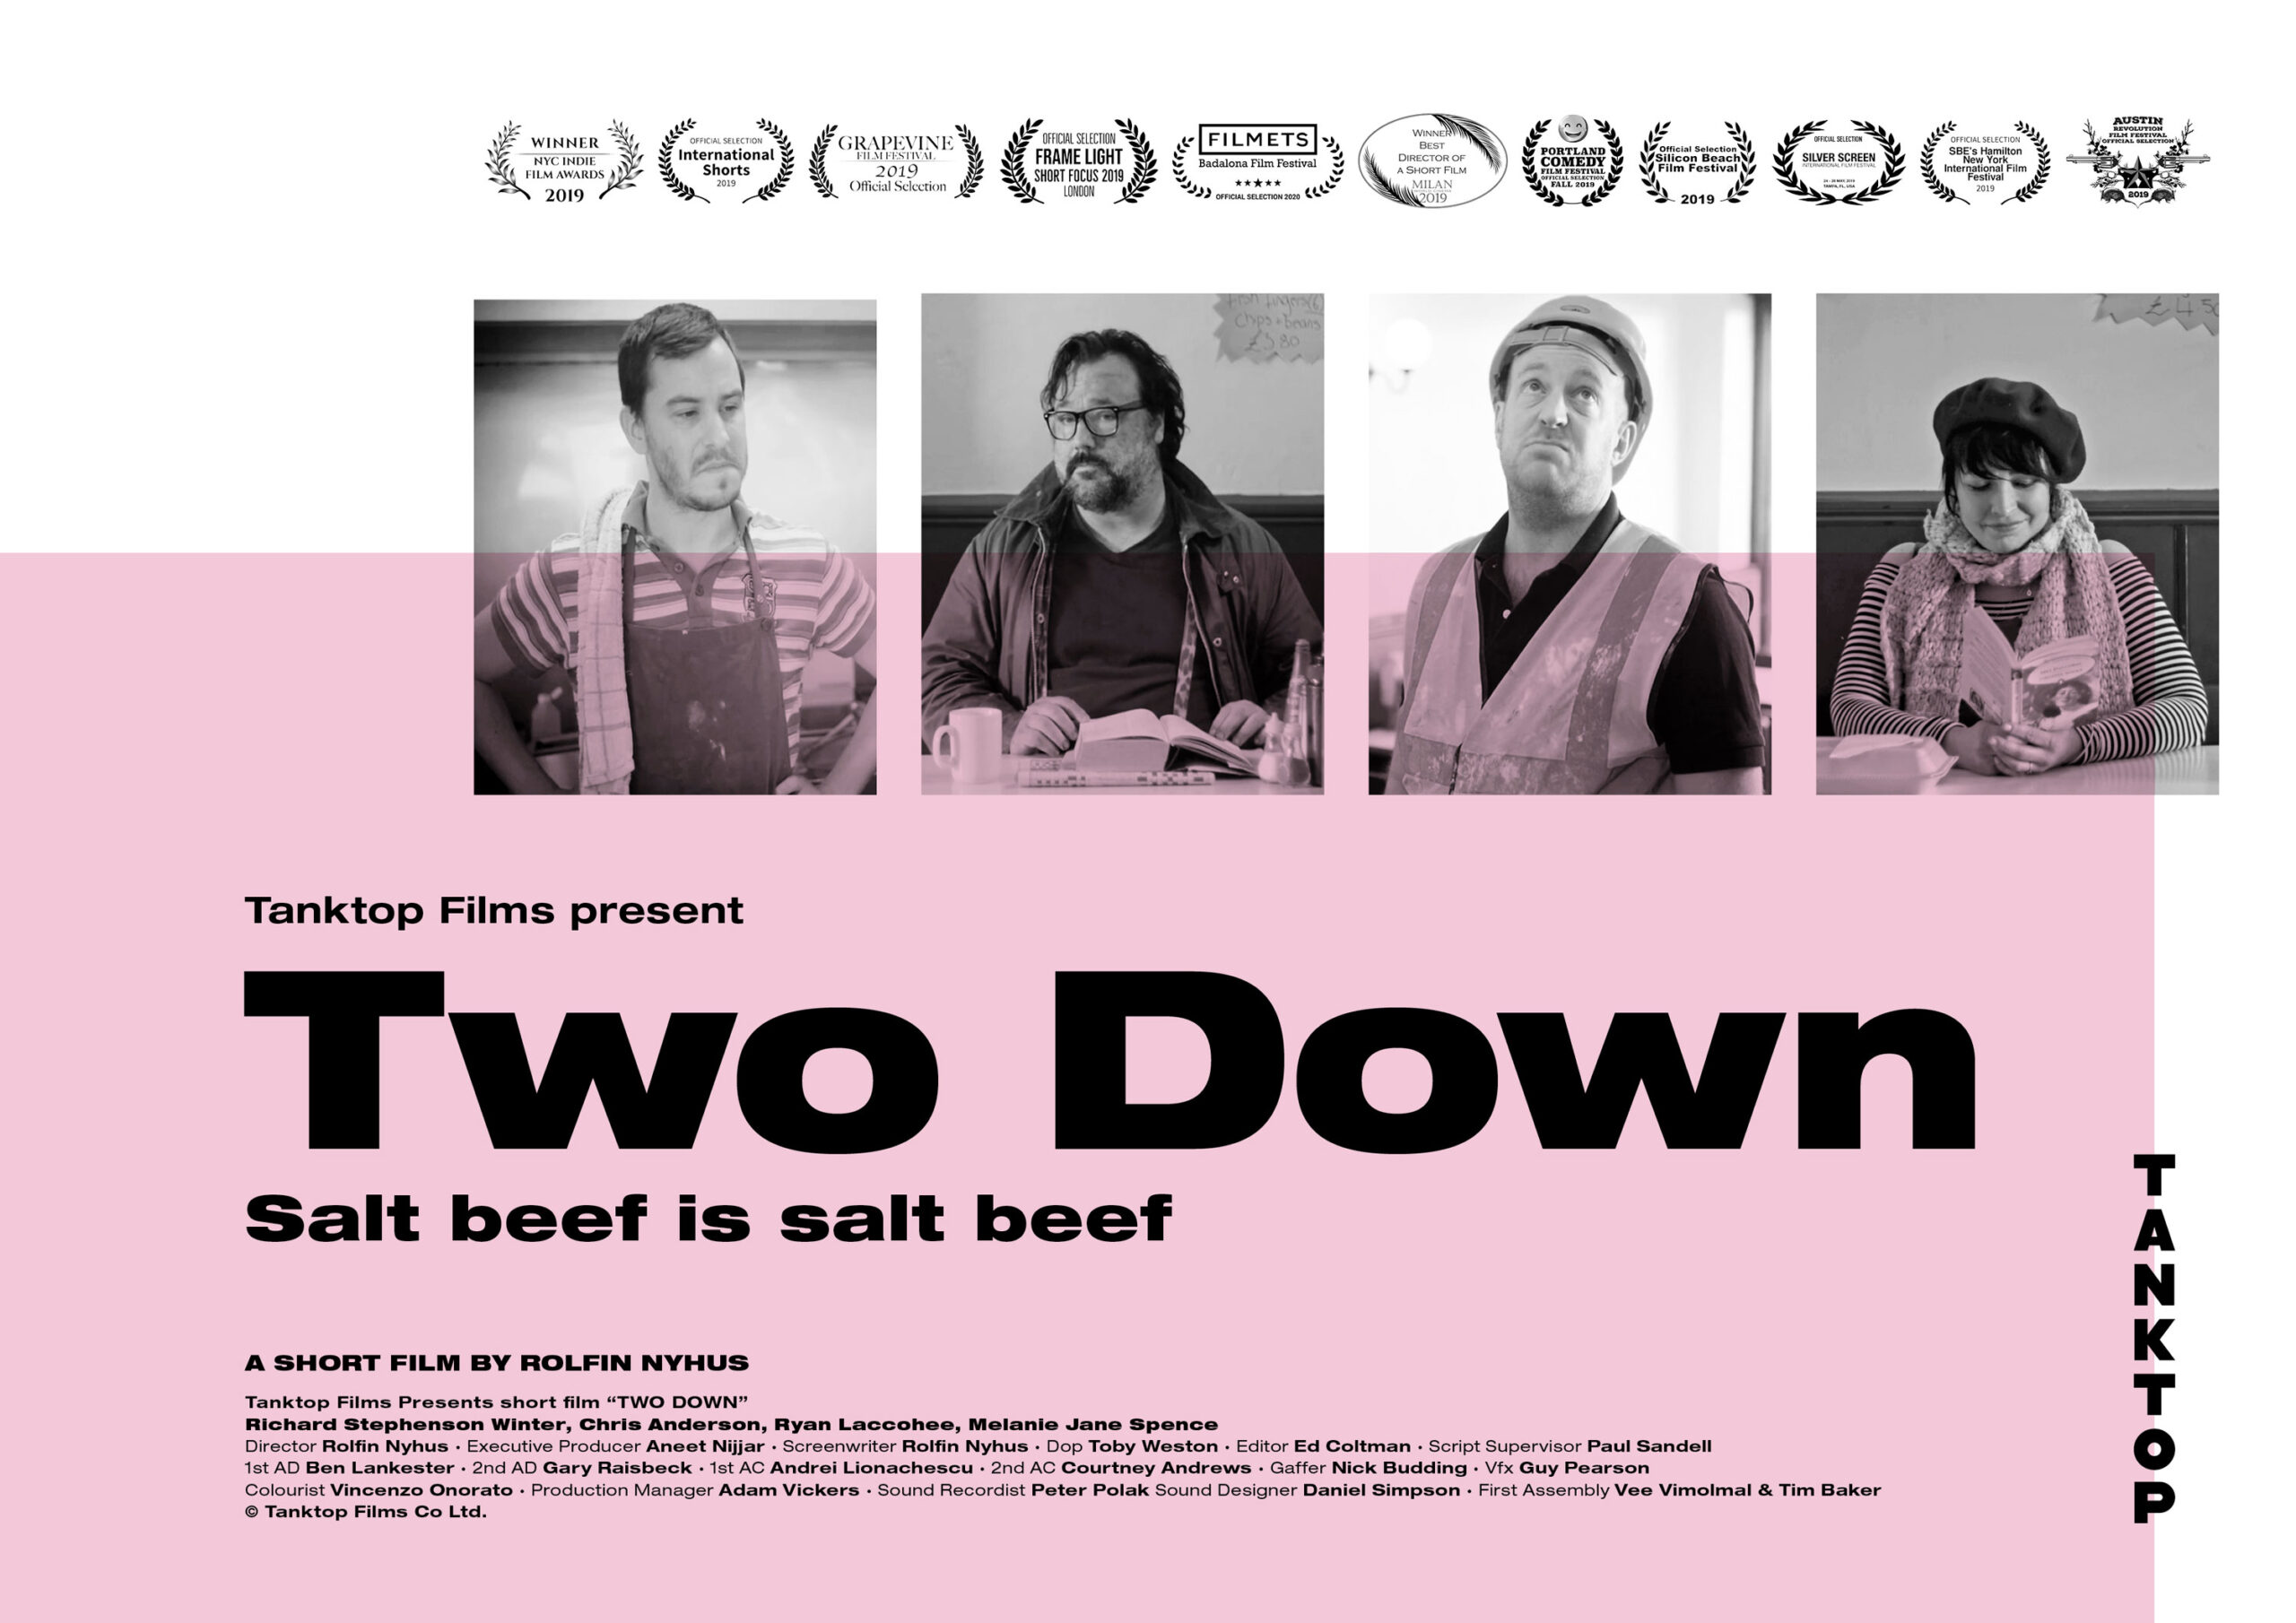 Two Down - A short film by Rolfin Nyhus